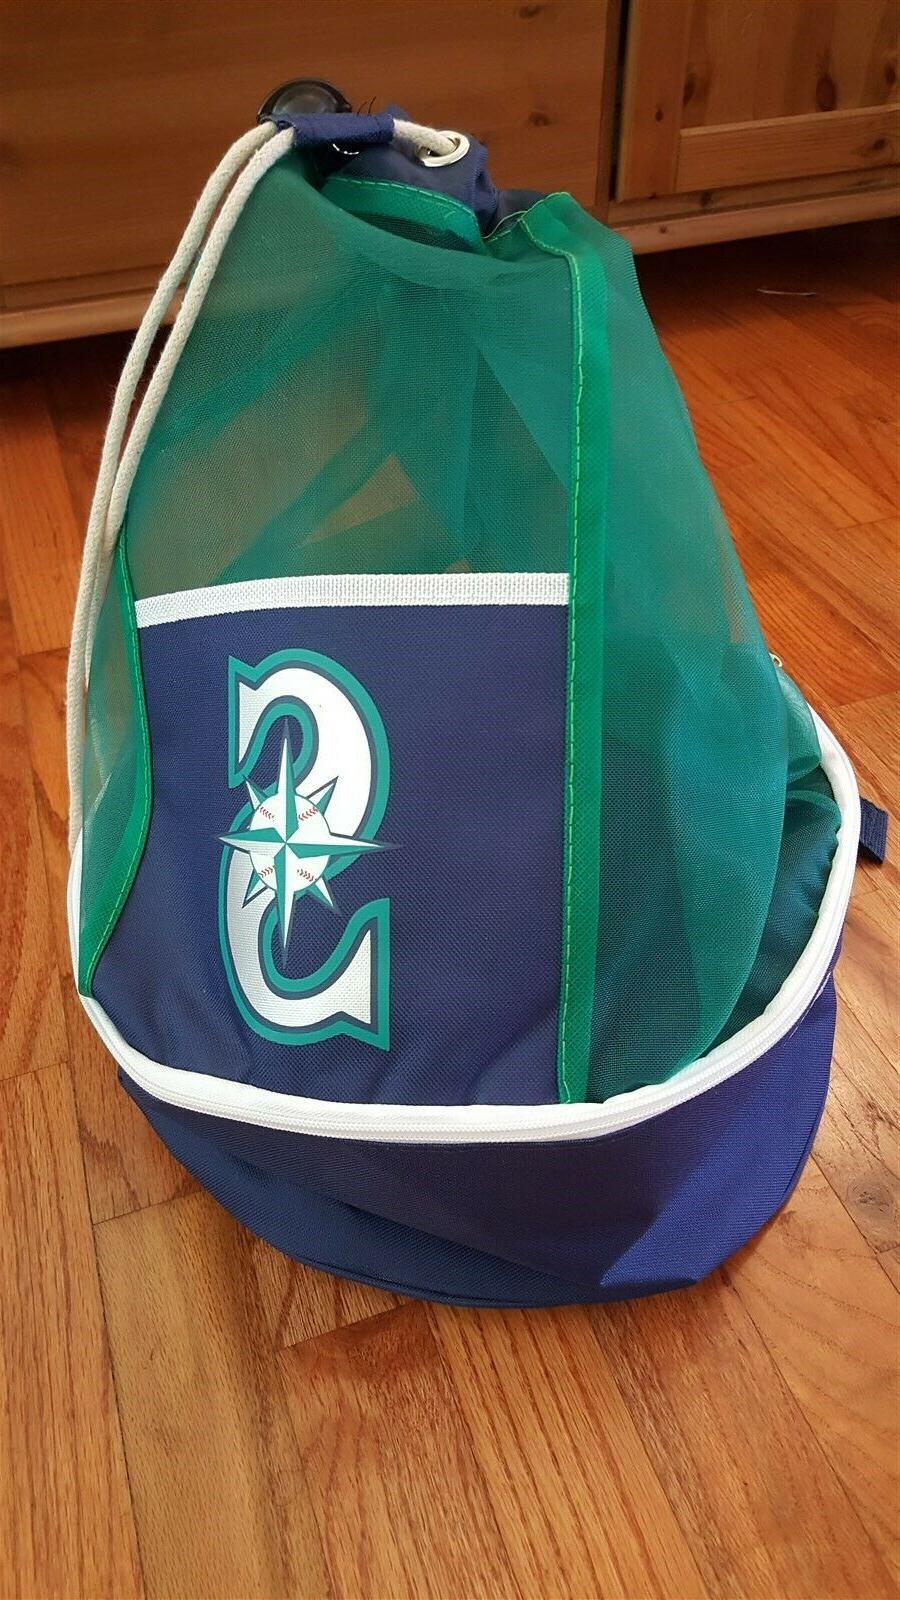 backpack day cooler seattle mariners 2nd chance